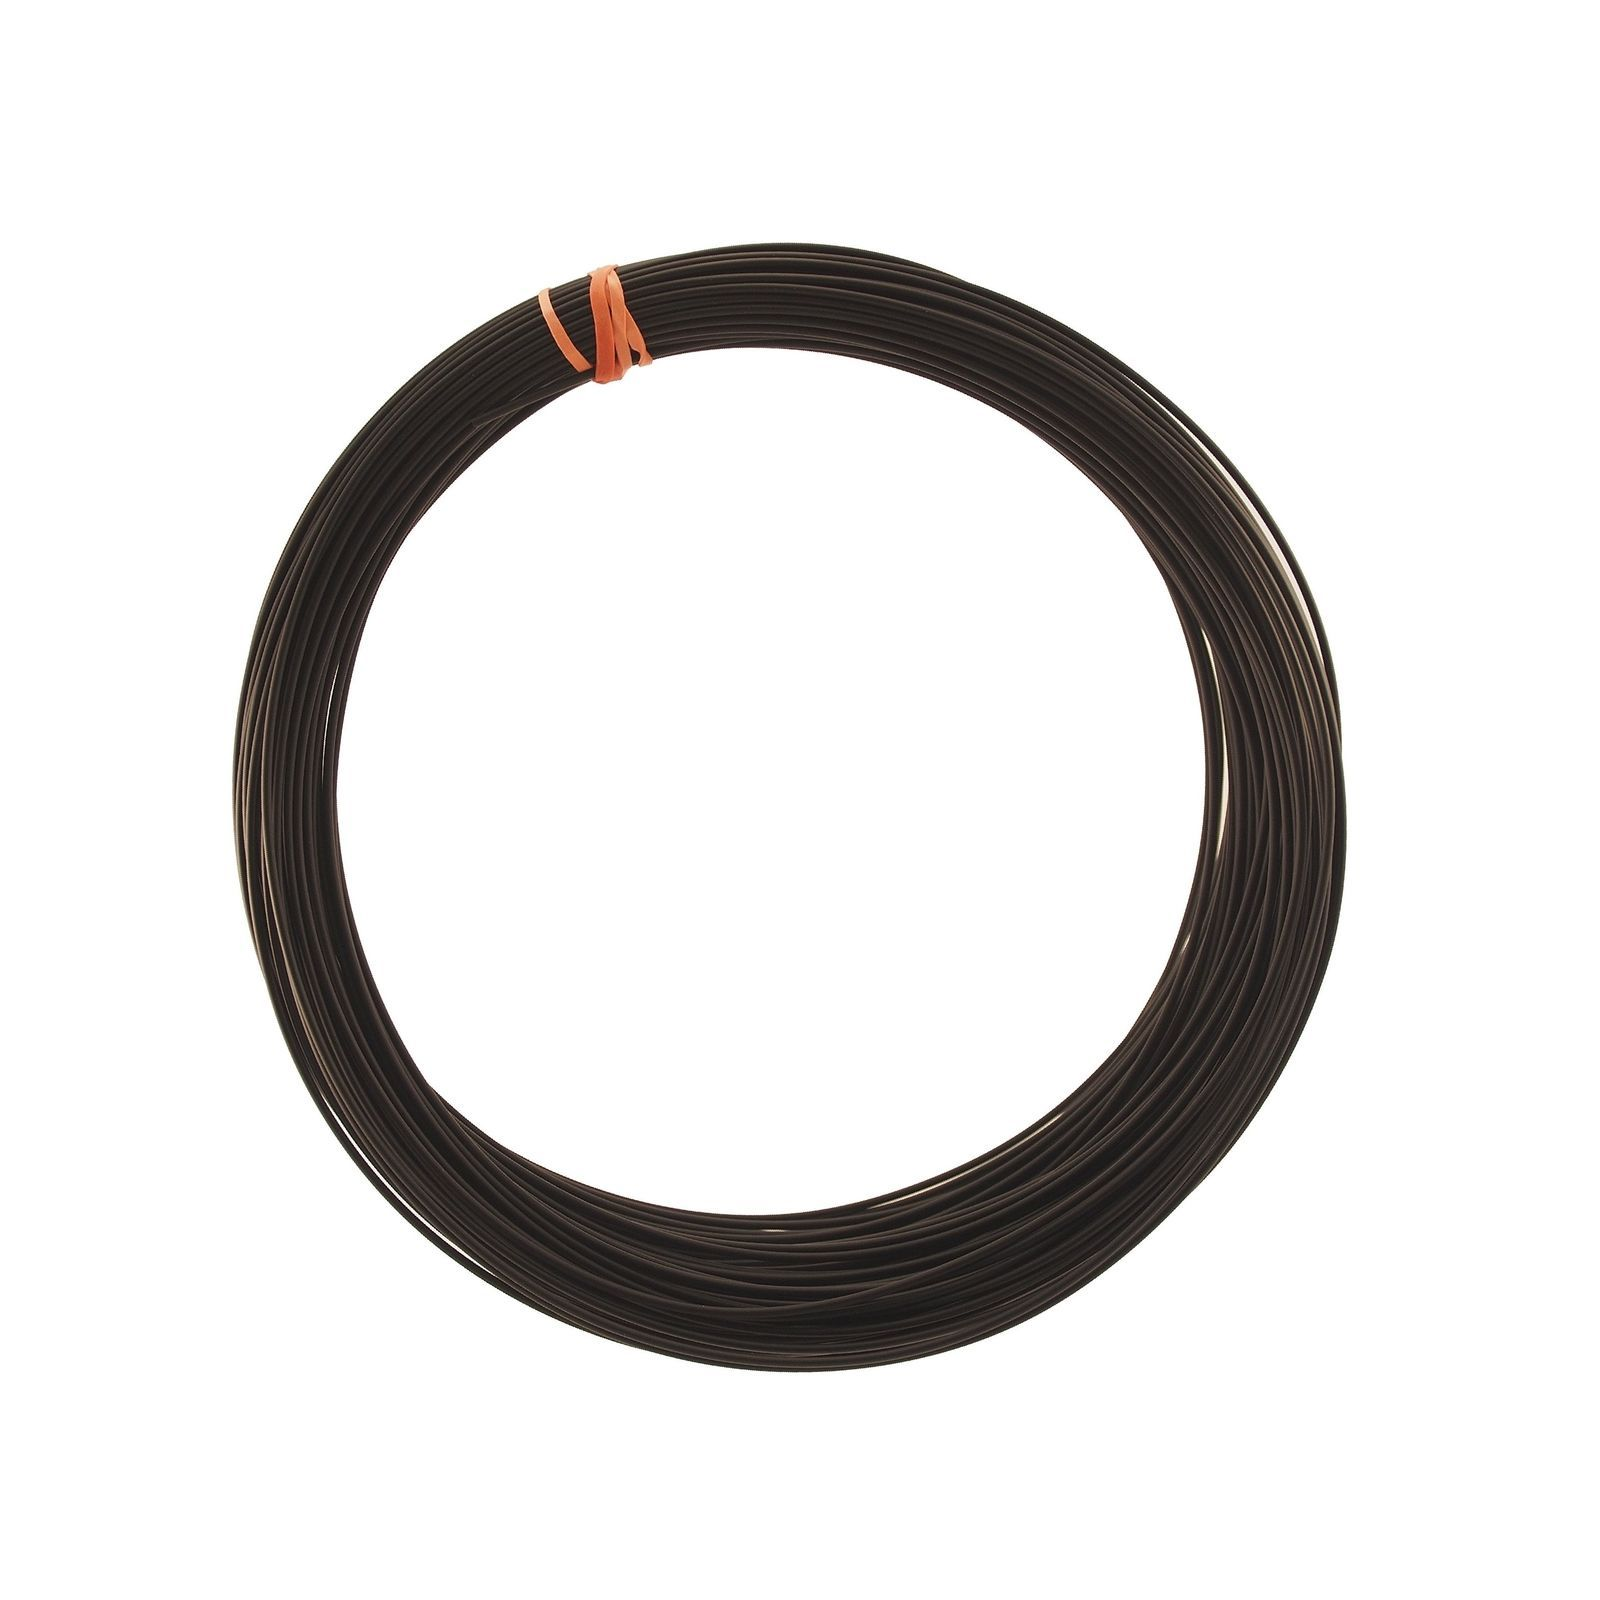 Proto-pasta CDP11701 Electrically Conductive Carbon Loose Coil , PLA Composit...